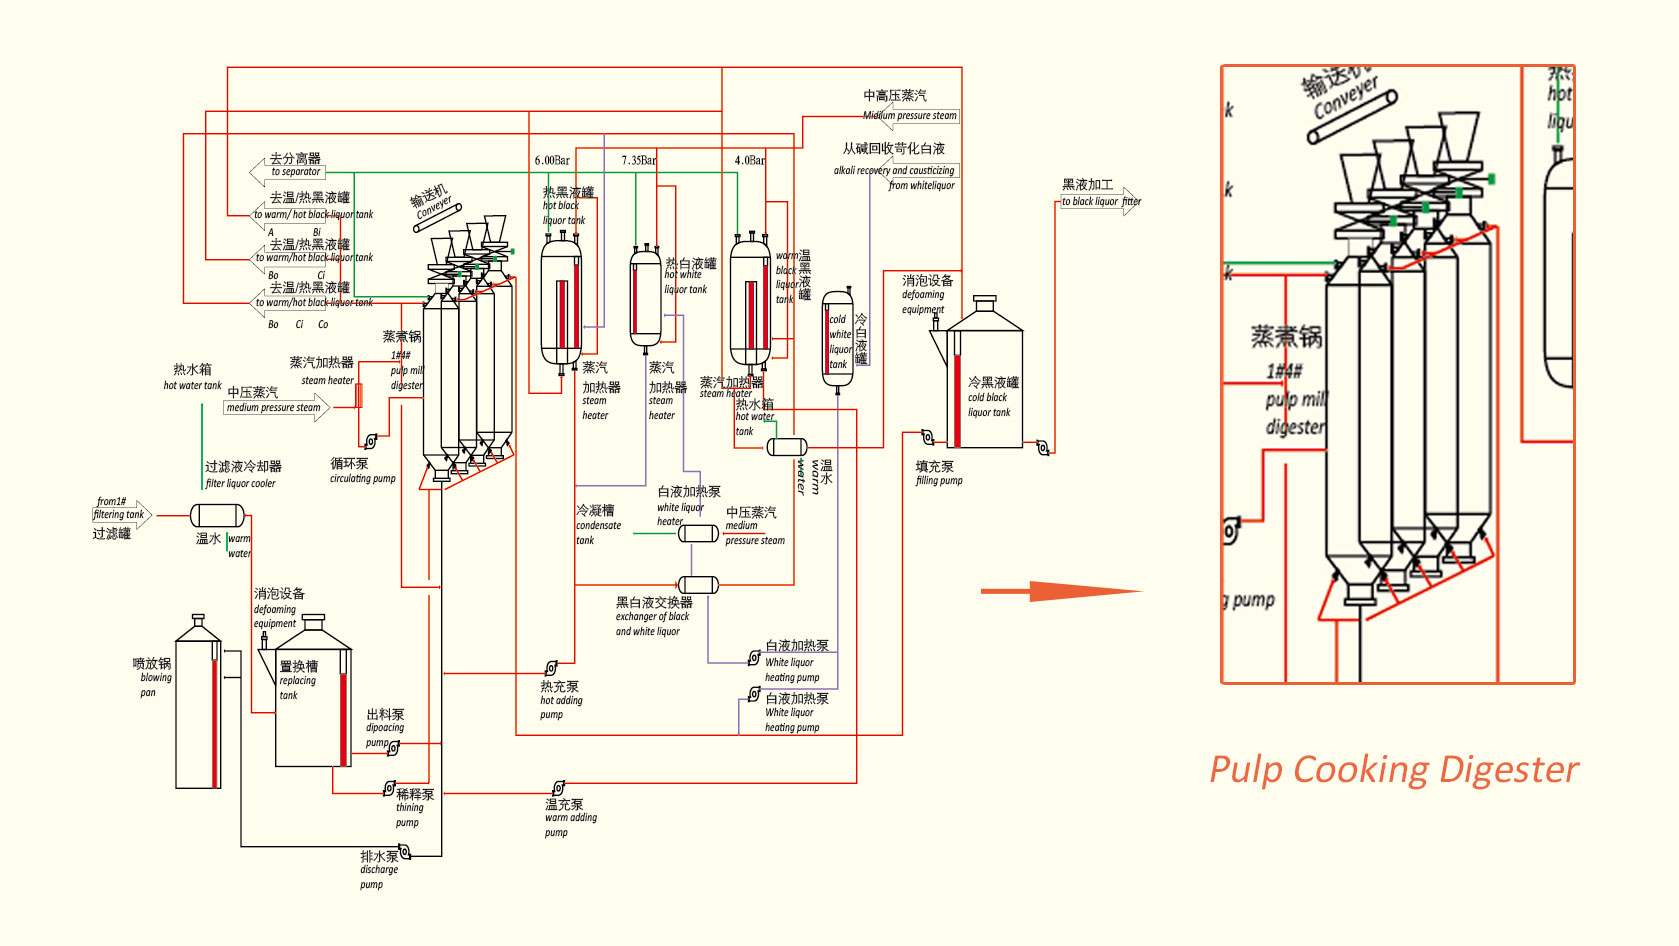 paper pulp cooking digester working principal